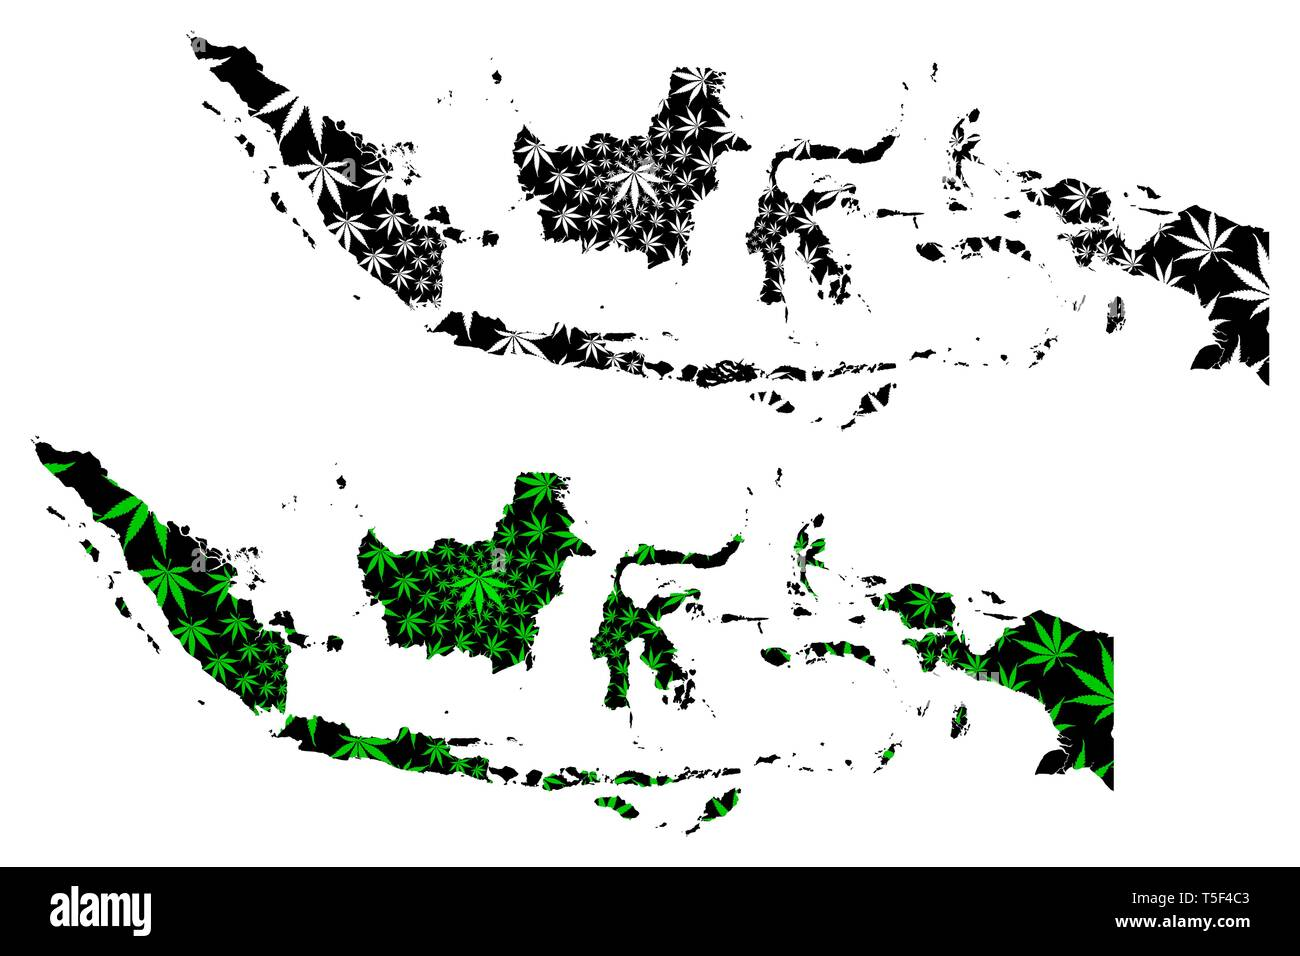 Indonesia - map is designed cannabis leaf green and black, Republic of Indonesia map made of marijuana (marihuana,THC) foliage, - Stock Image